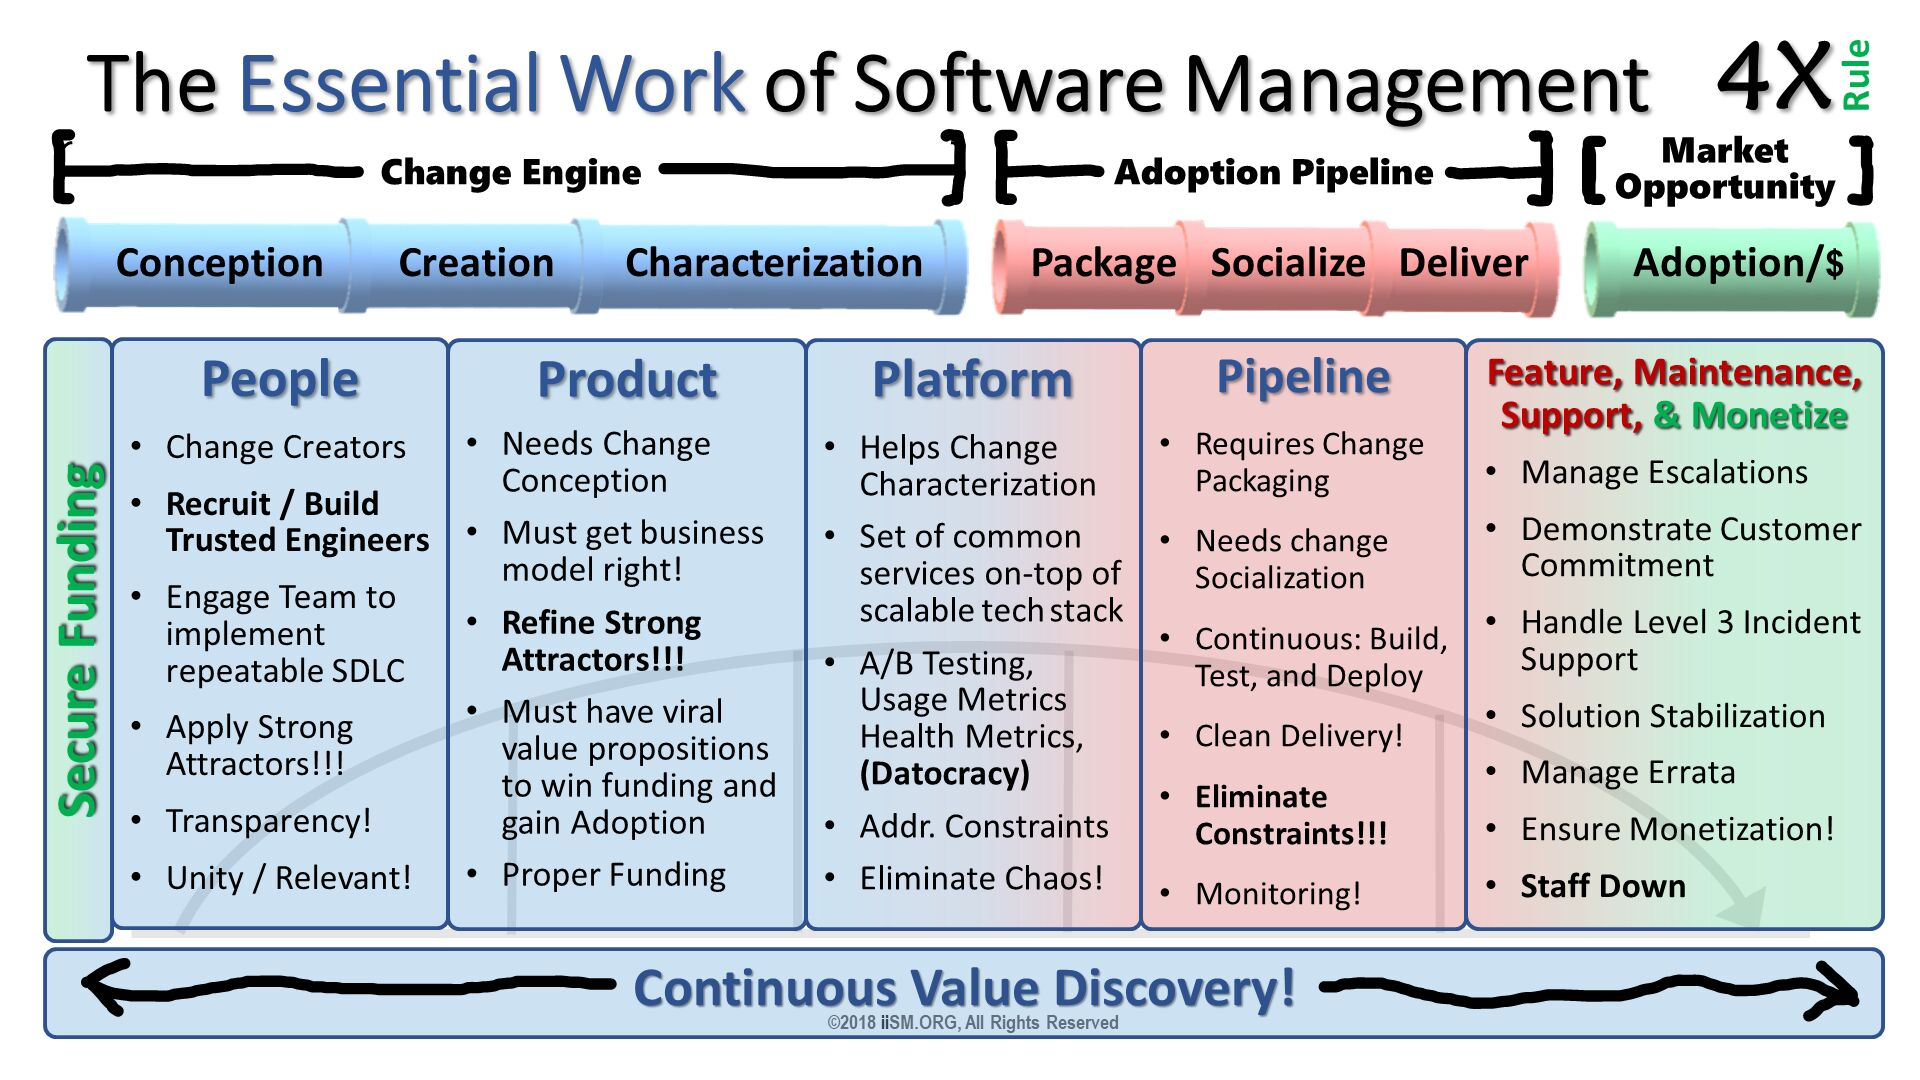 The Essential Work of Software Management. ©2018 iiSM.ORG, All Rights Reserved. People Change Creators Recruit / Build Trusted Engineers Engage Team to implement repeatable SDLC  Apply Strong Attractors!!! Transparency! Unity / Relevant!  . Product Needs Change Conception Must get business model right! Refine Strong Attractors!!! Must have viral value propositions to win funding and gain Adoption Proper Funding . Platform Helps Change Characterization Set of common services on-top of scalable tech stack  A/B Testing, Usage Metrics Health Metrics,(Datocracy) Addr. Constraints Eliminate Chaos!  . Pipeline Requires Change Packaging  Needs change Socialization Continuous: Build, Test, and Deploy Clean Delivery! Eliminate Constraints!!! Monitoring! . Feature, Maintenance, Support, & Monetize Manage Escalations Demonstrate Customer Commitment Handle Level 3 Incident Support Solution Stabilization Manage Errata Ensure Monetization! Staff Down . Secure Funding.